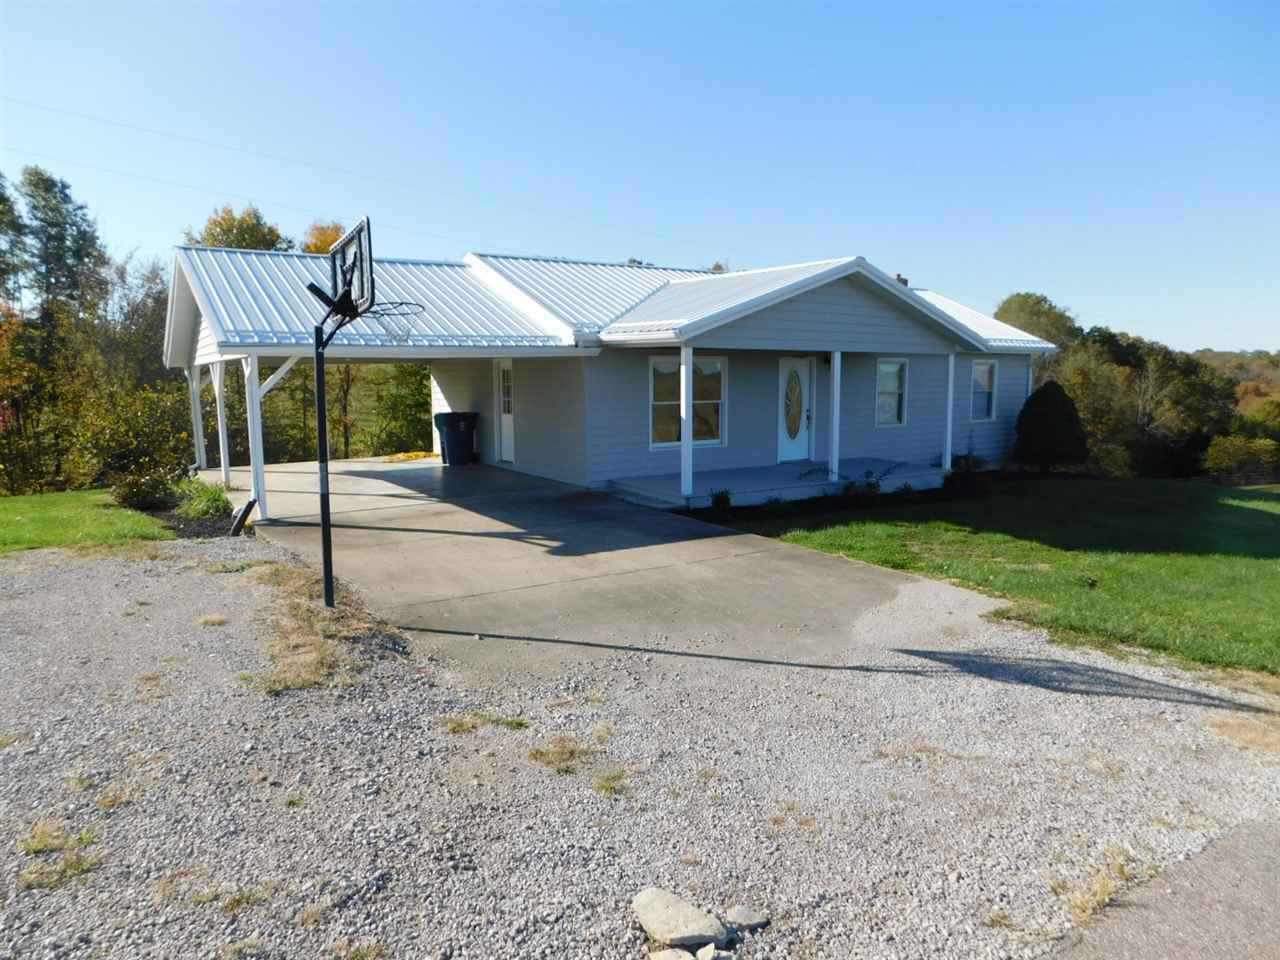 Photo 1 for 990 Arthur Corinth, KY 41010